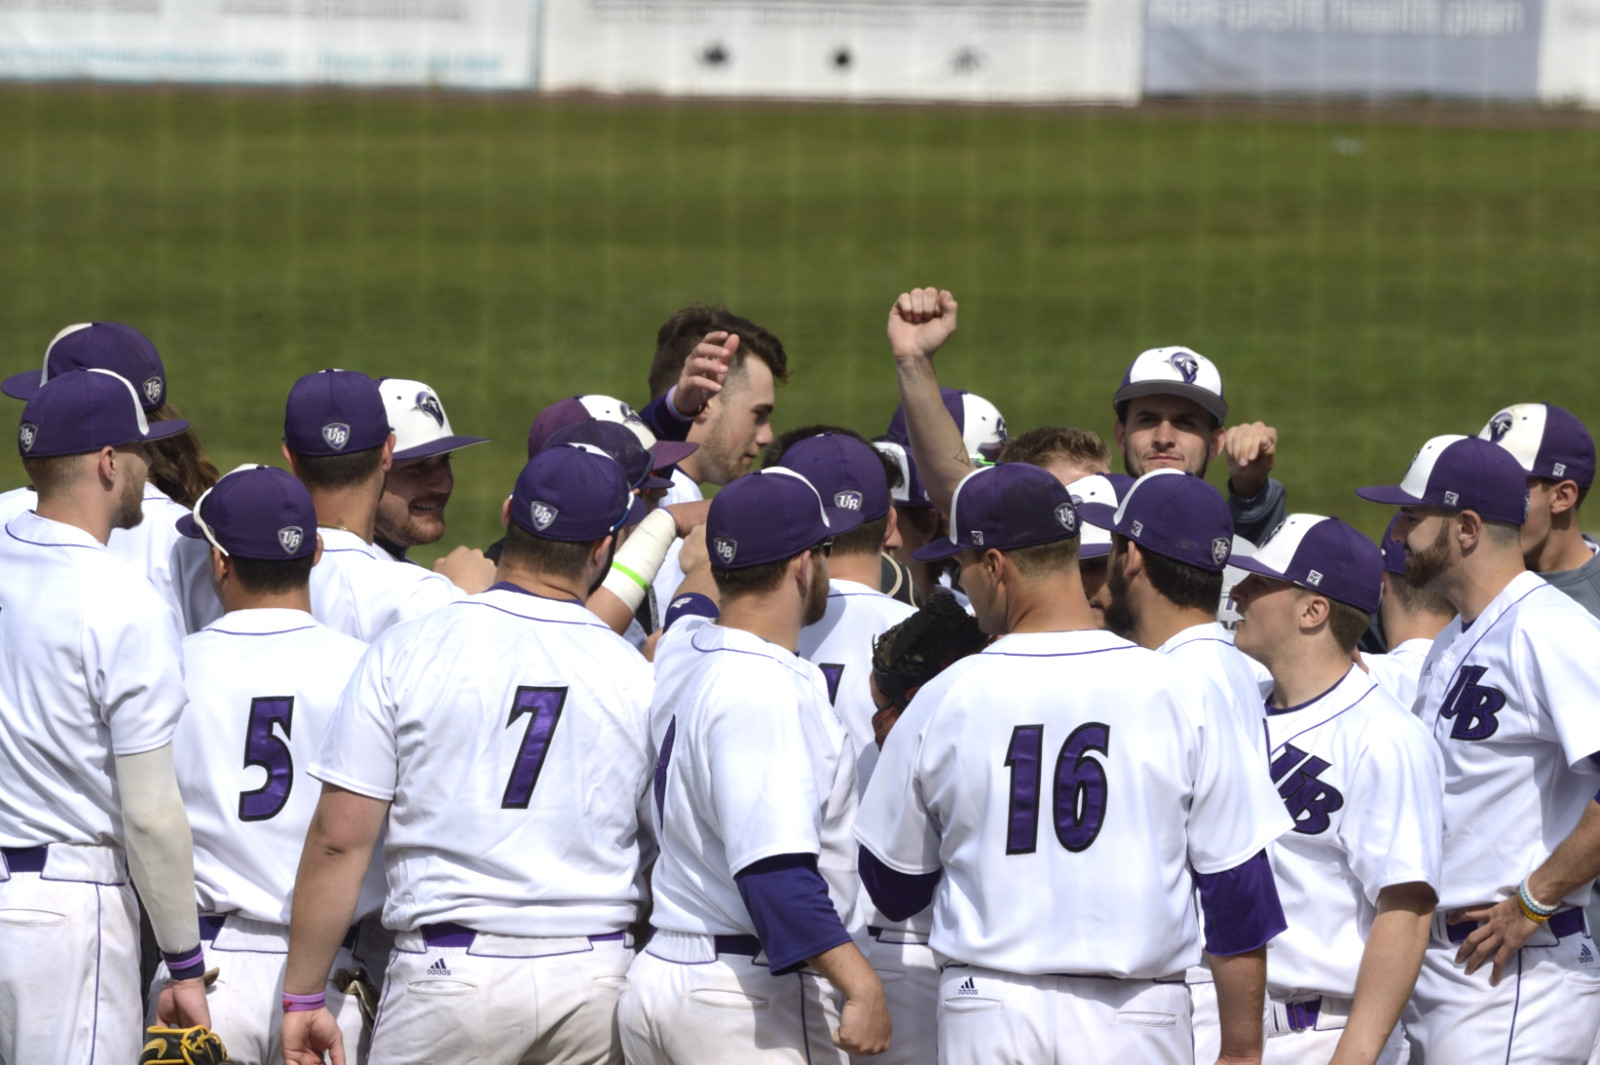 Purple Knights Advance To 2017 ECC Baseball Championship With Monday Sweep At Queens (N.Y.) College